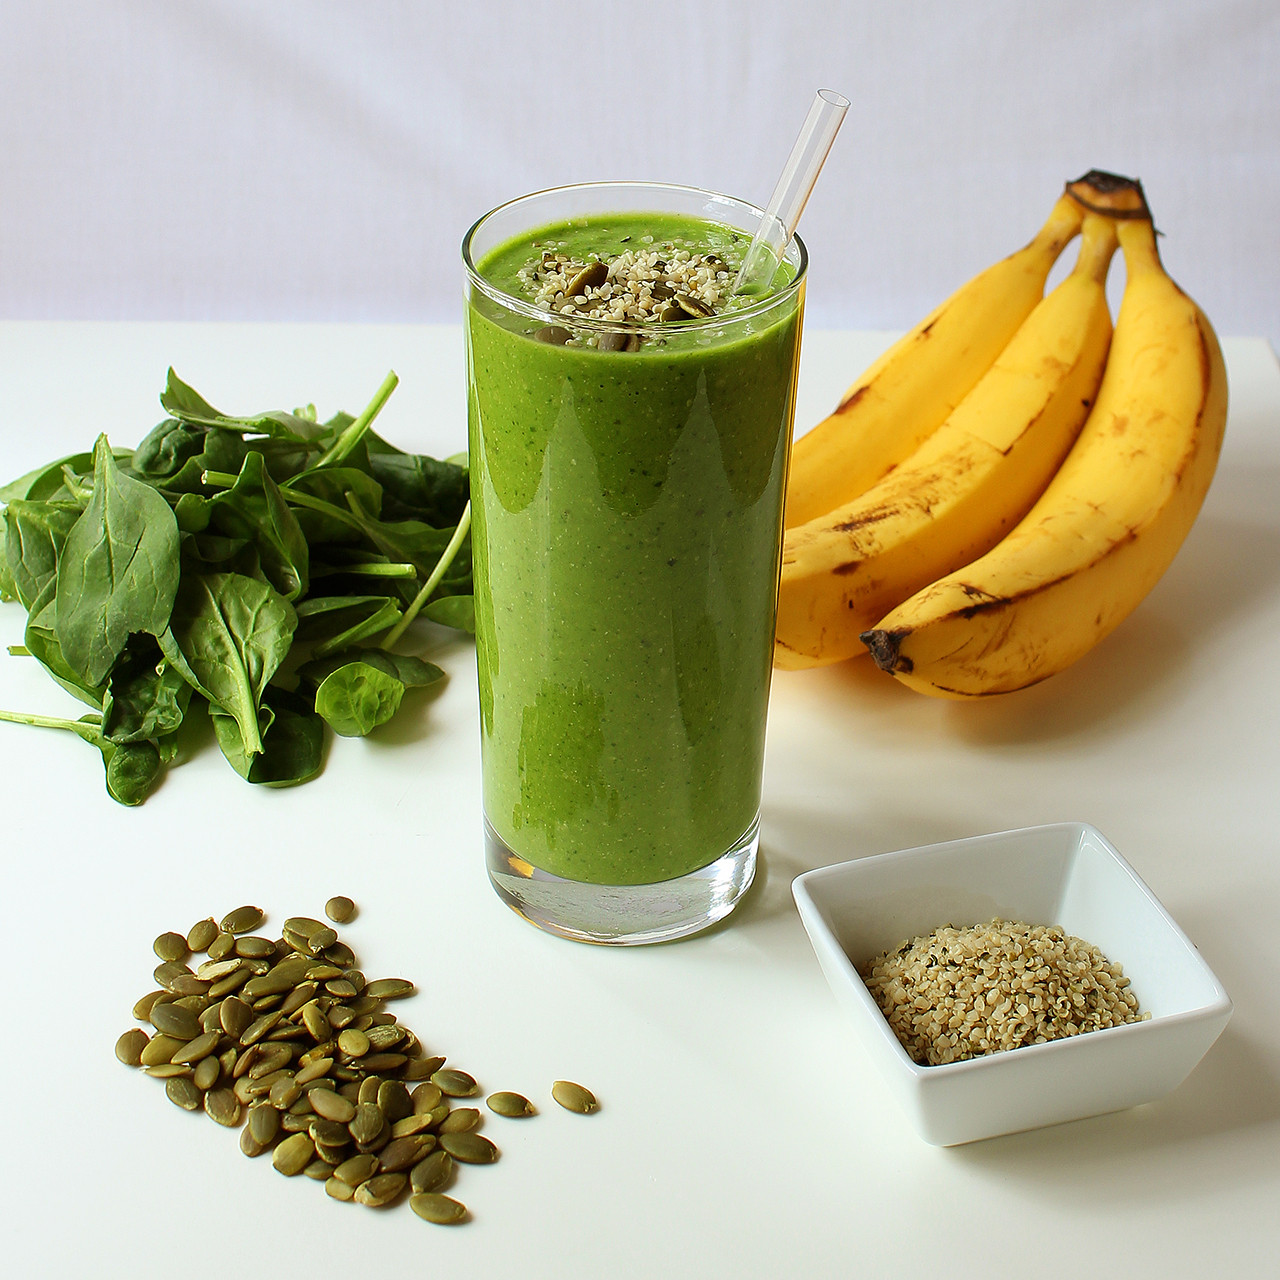 Green Healthy Smoothies  Green Protein Power Breakfast Smoothie I LOVE VEGAN